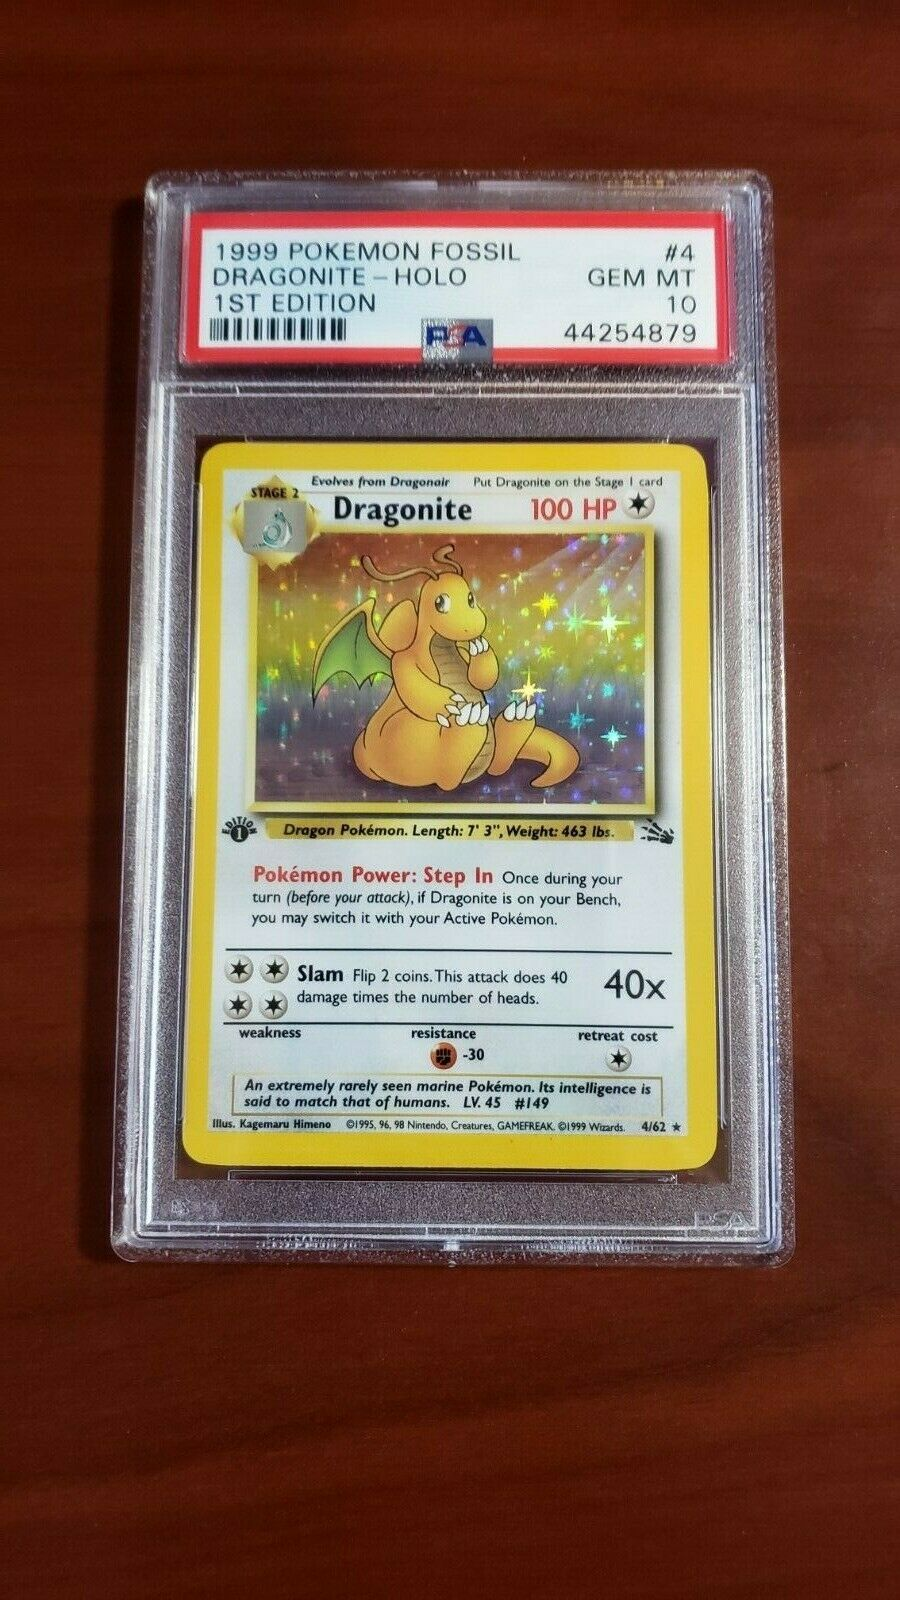 1999 Pokemon Fossil Dragonite 1st First Edition PSA 10 Card Holo GEM MINT